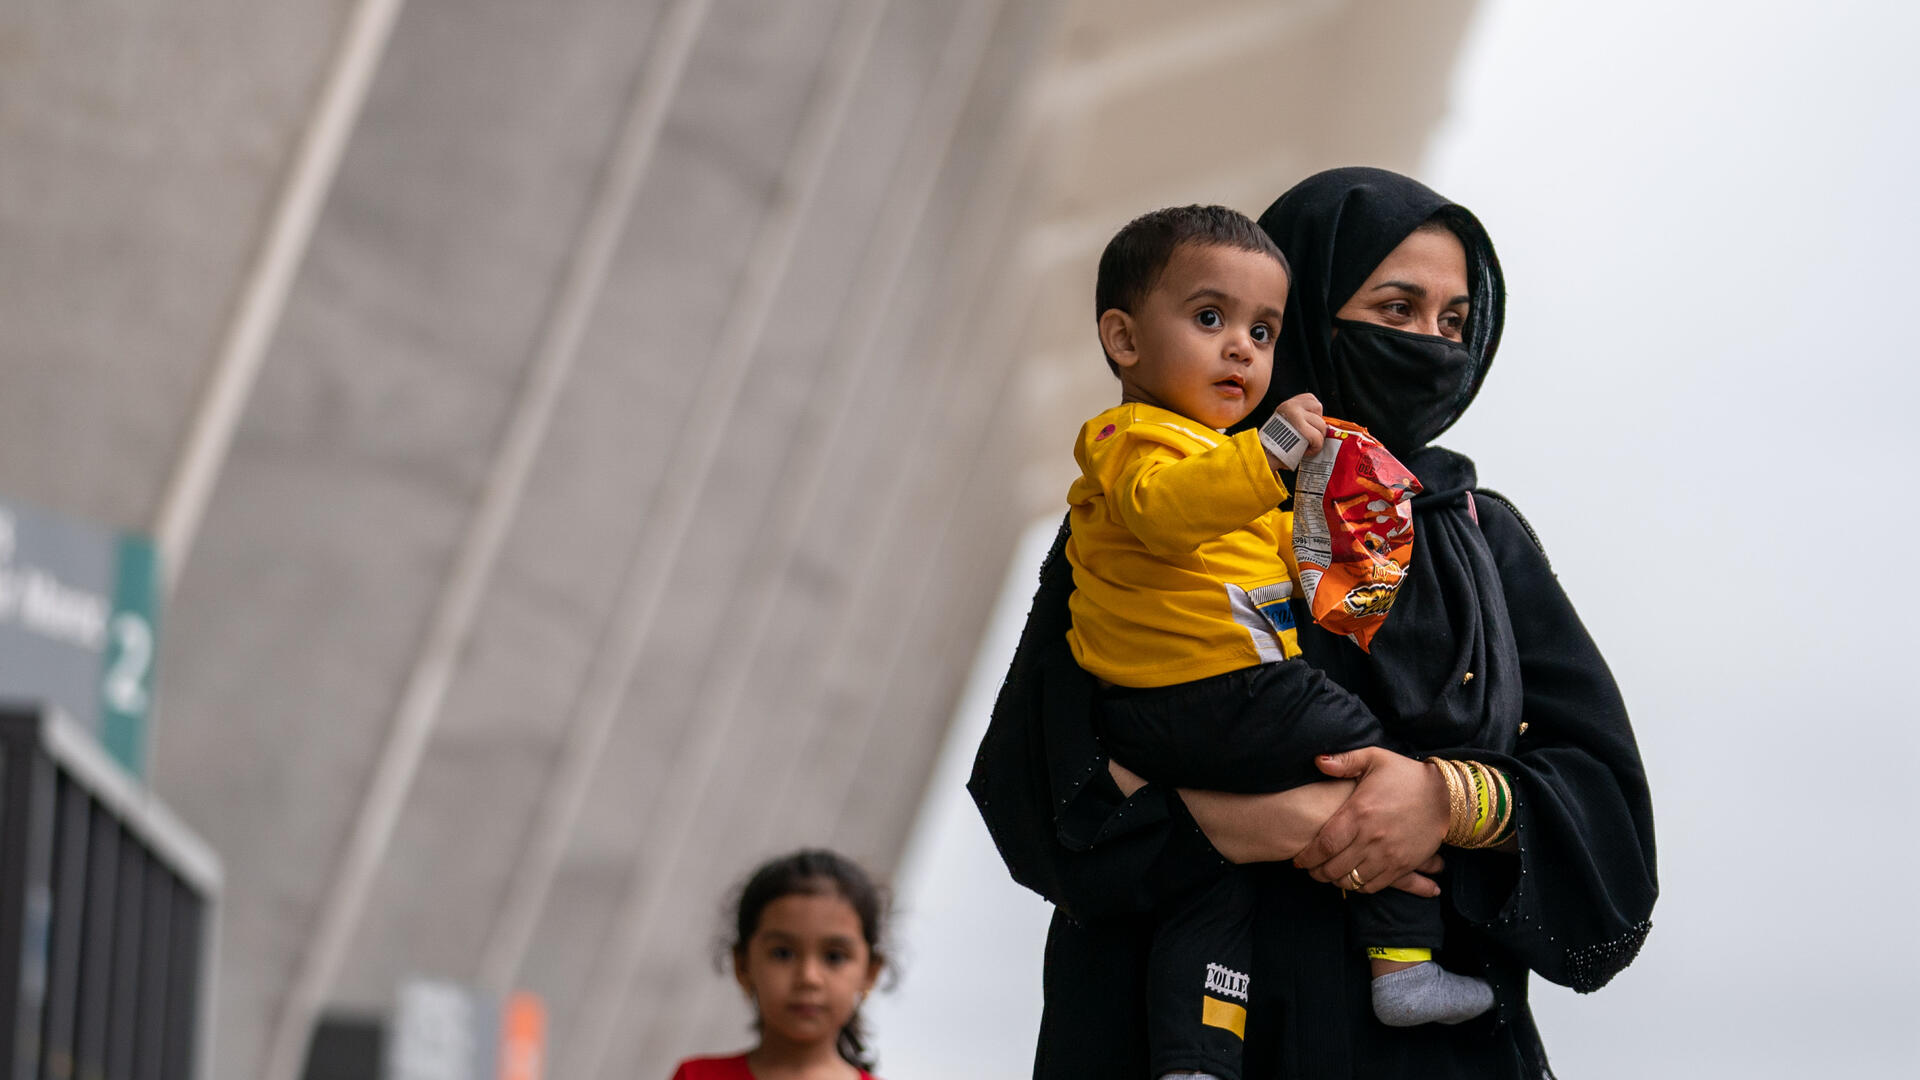 An Afghan woman holds her son as they arrive in the U.S.